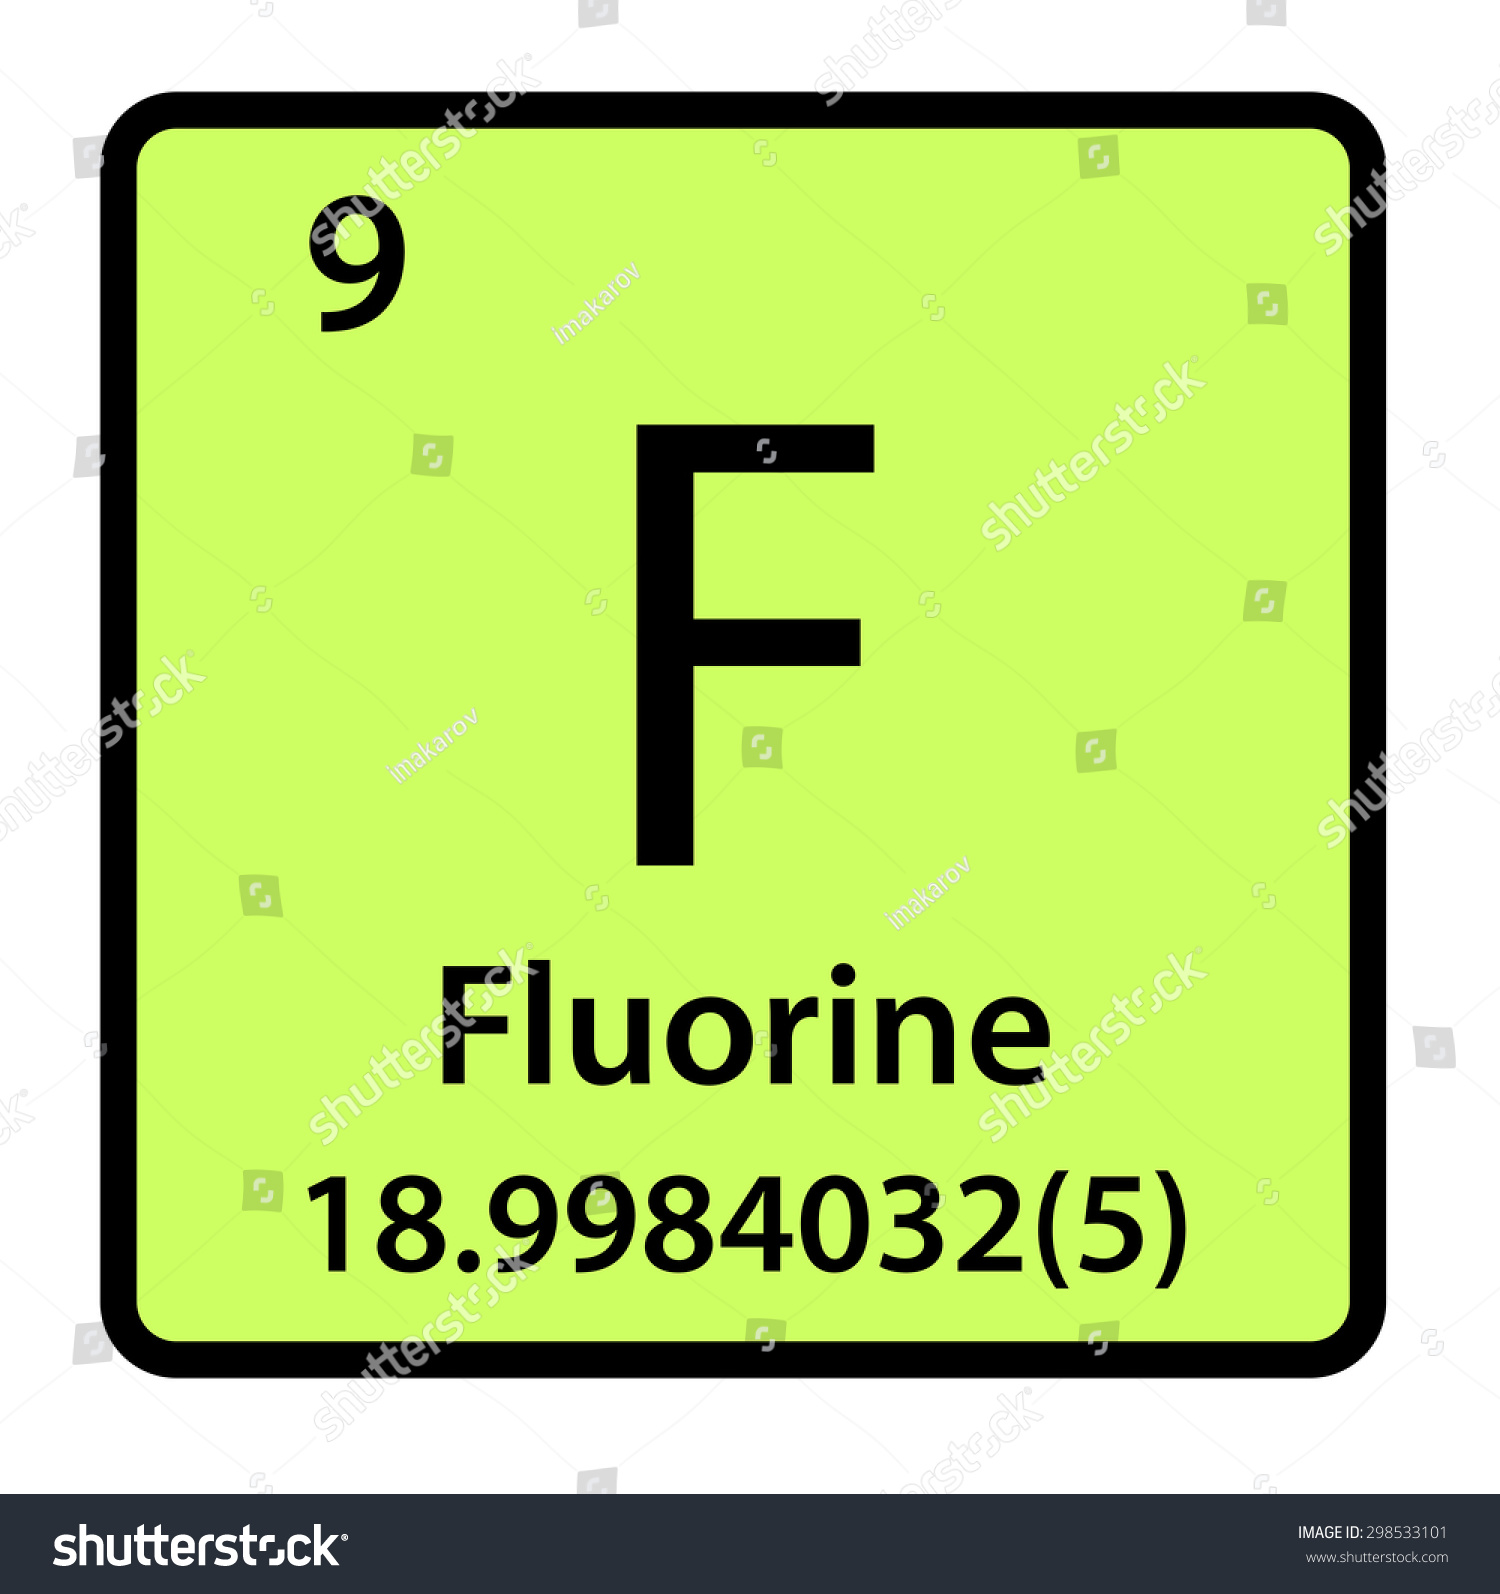 Fluorine periodic table images periodic table images periodic table of elements fluorine images periodic table images element fluorine periodic table stock illustration 298533101 gamestrikefo Gallery